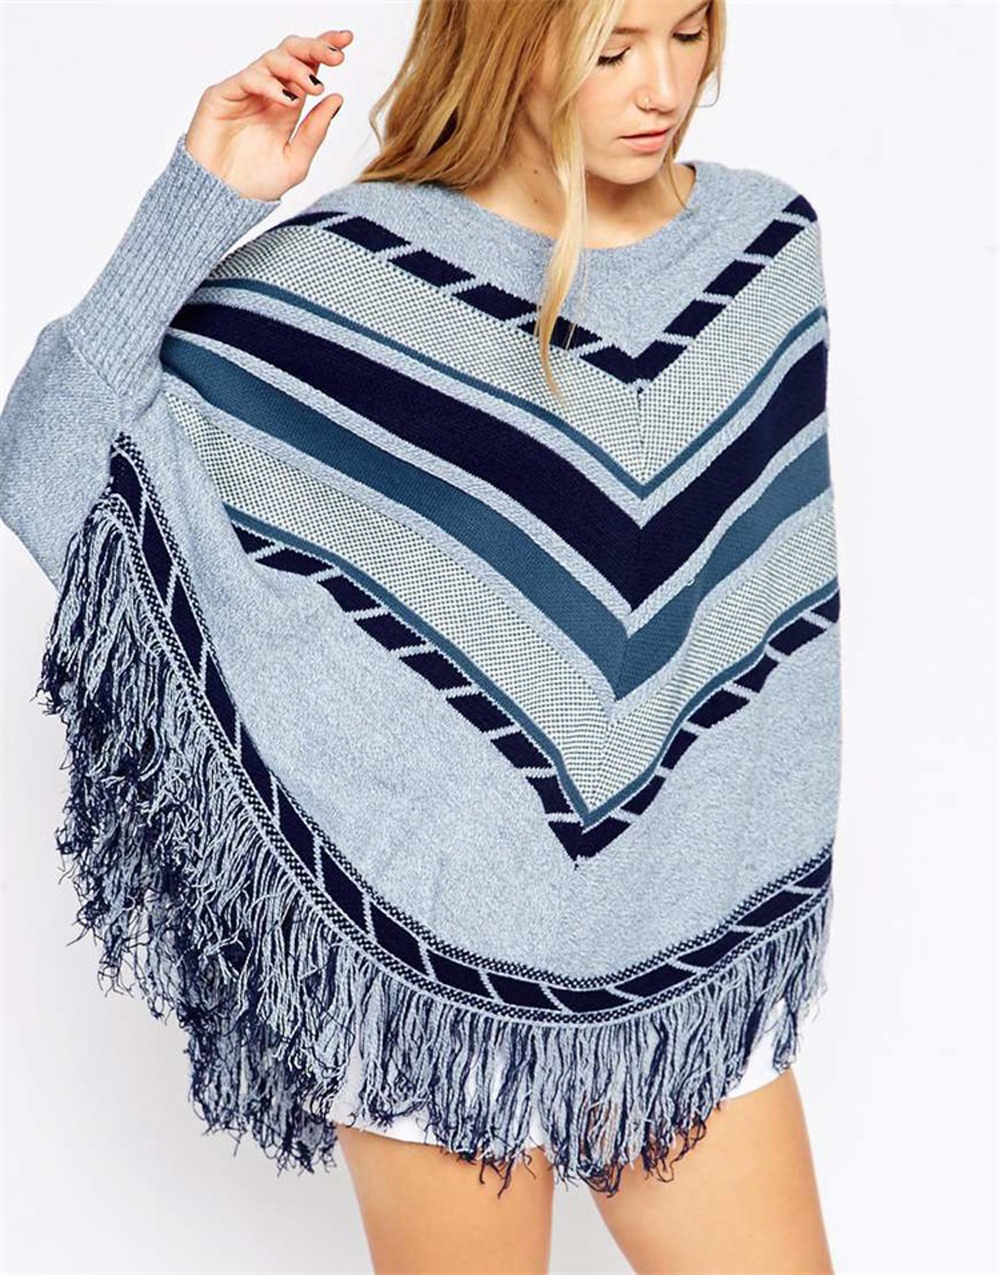 Maternity Tassel Cape Shawl Sweater Poncho Ladies' Cape with Fringed Hem Striped Patchwork Pullover Fashionable Retro Style bering classic 11839 404